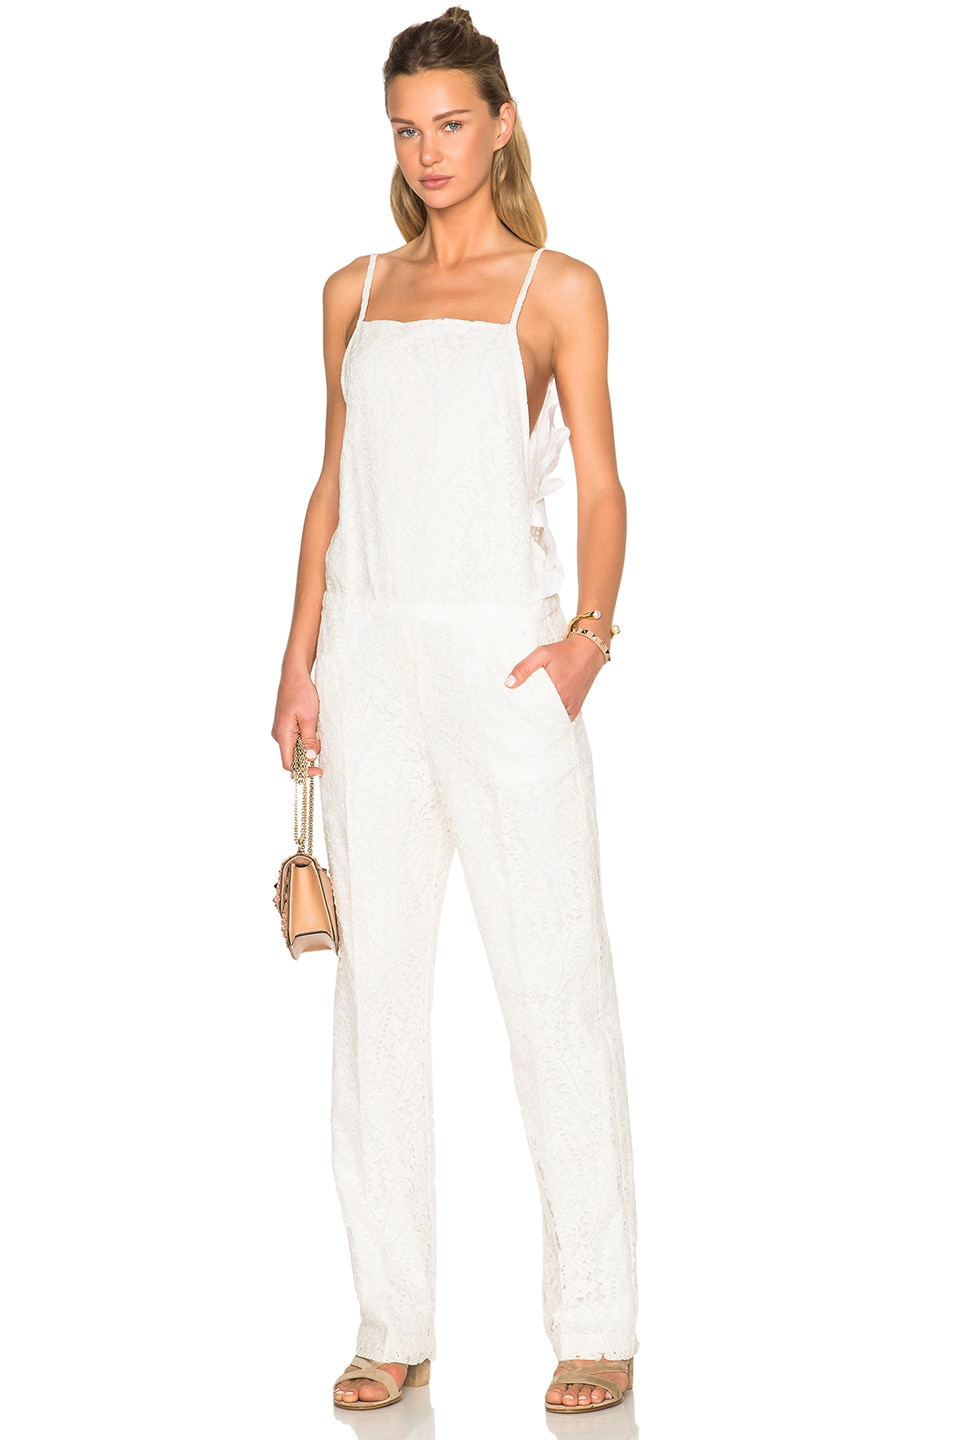 Image 1 of No. 21 Jumpsuit in White